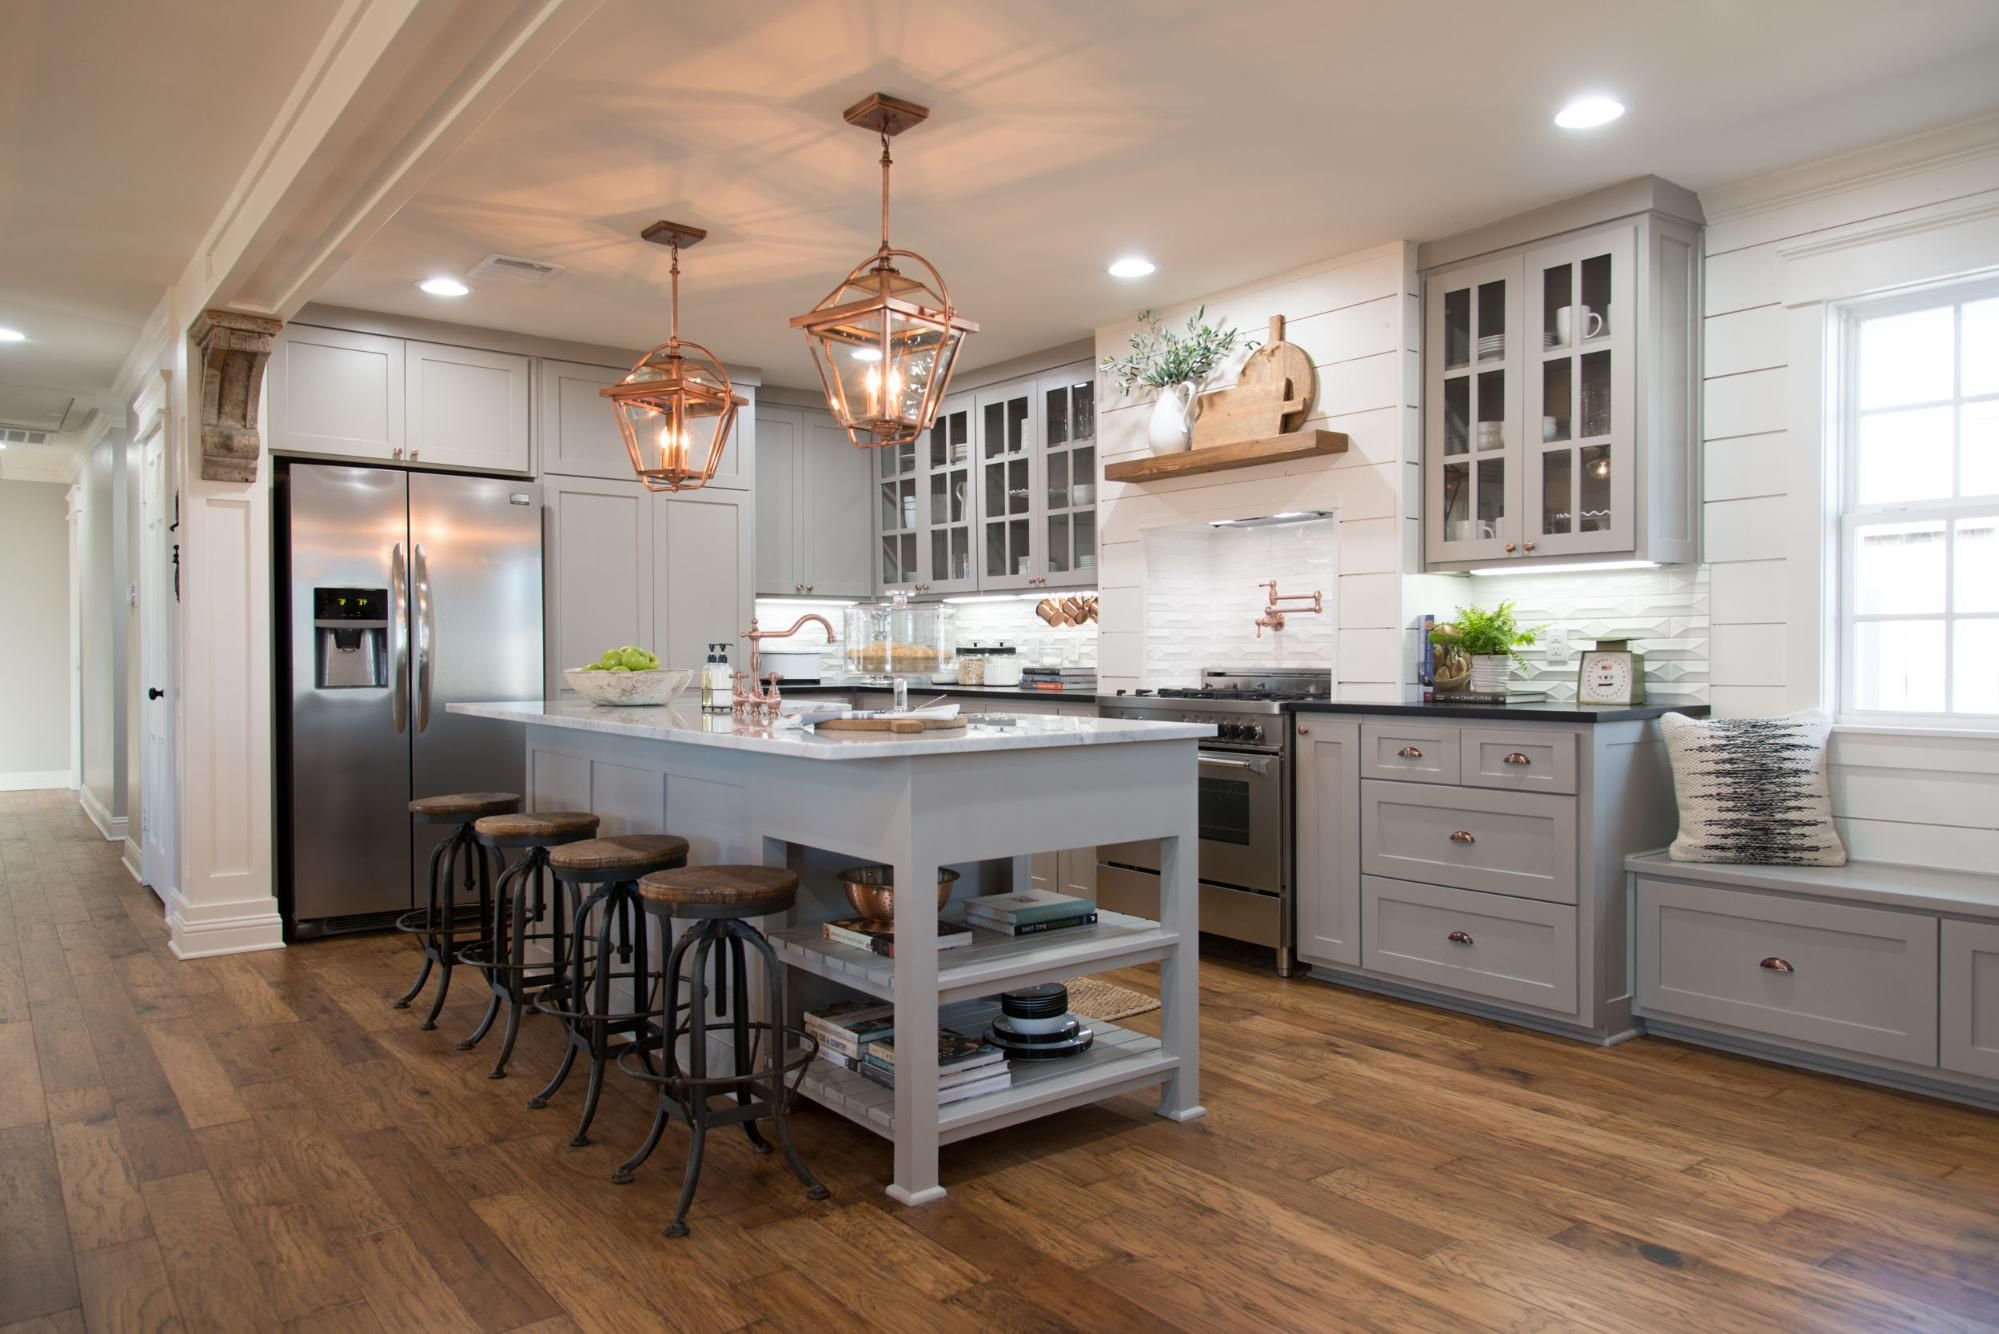 Fixer upper gaines kitchen - Fixer Upper Carriage House Kitchen Magnolia Farms Fixer Upper Cottage House